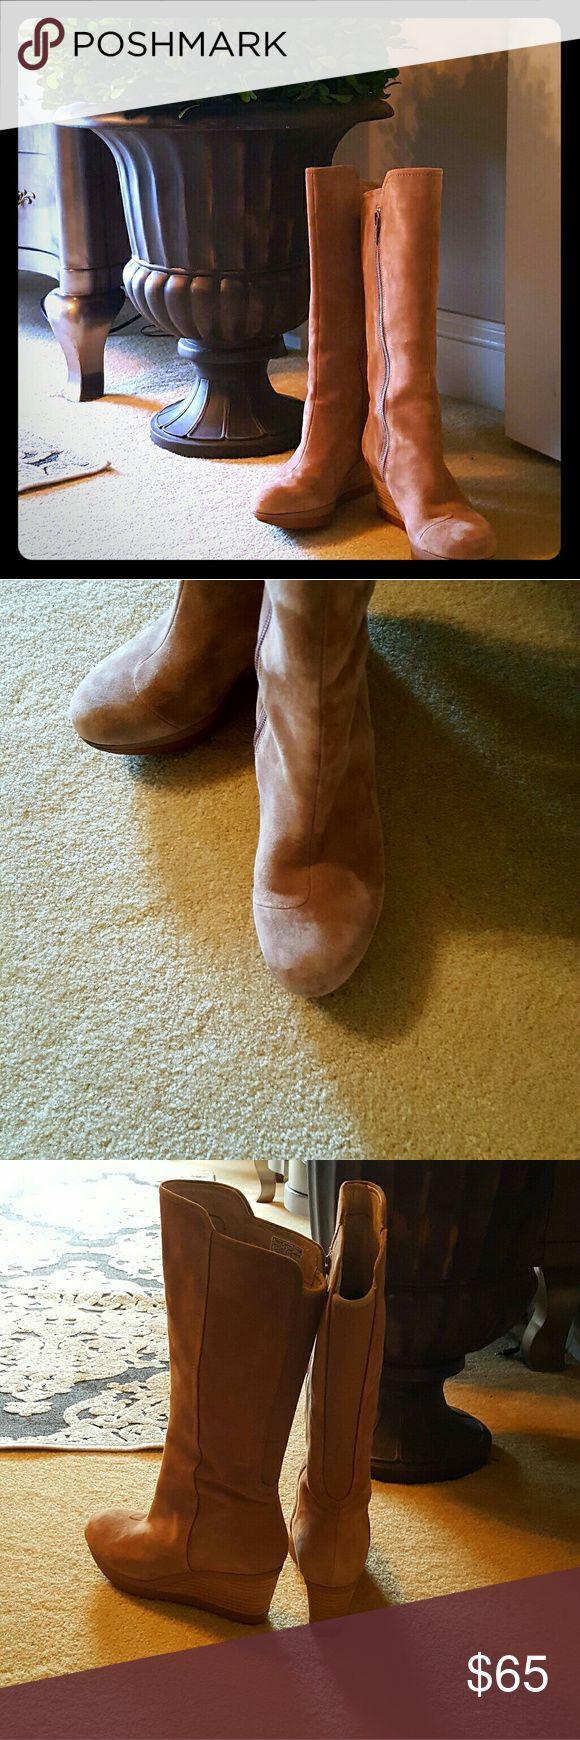 Tsubo Tan Suede Wedge Boots These wedge boots are great for transitioning into spring!  Wear with skinny jeans, tights & a dress or leggings. Only worn once, they are in near-perfect condition, with a few marks on the wedges as well as inside the boot shaft. tsubo Shoes Heeled Boots